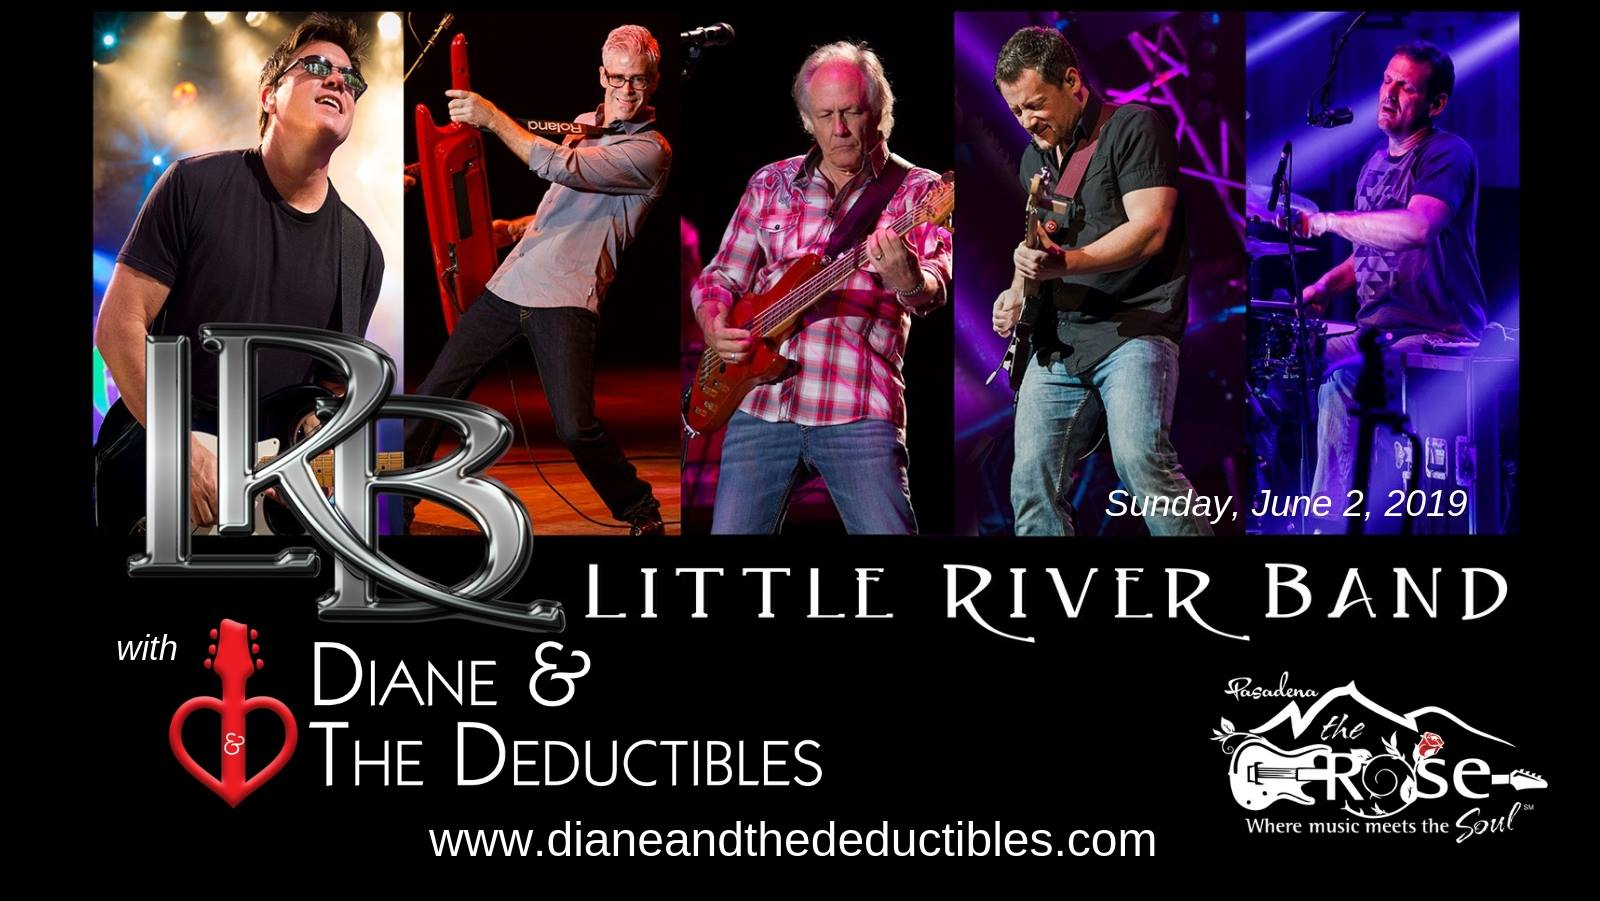 Little RIver Band and Diane & The Deductibles at The Rose in Pasadena June 2nd